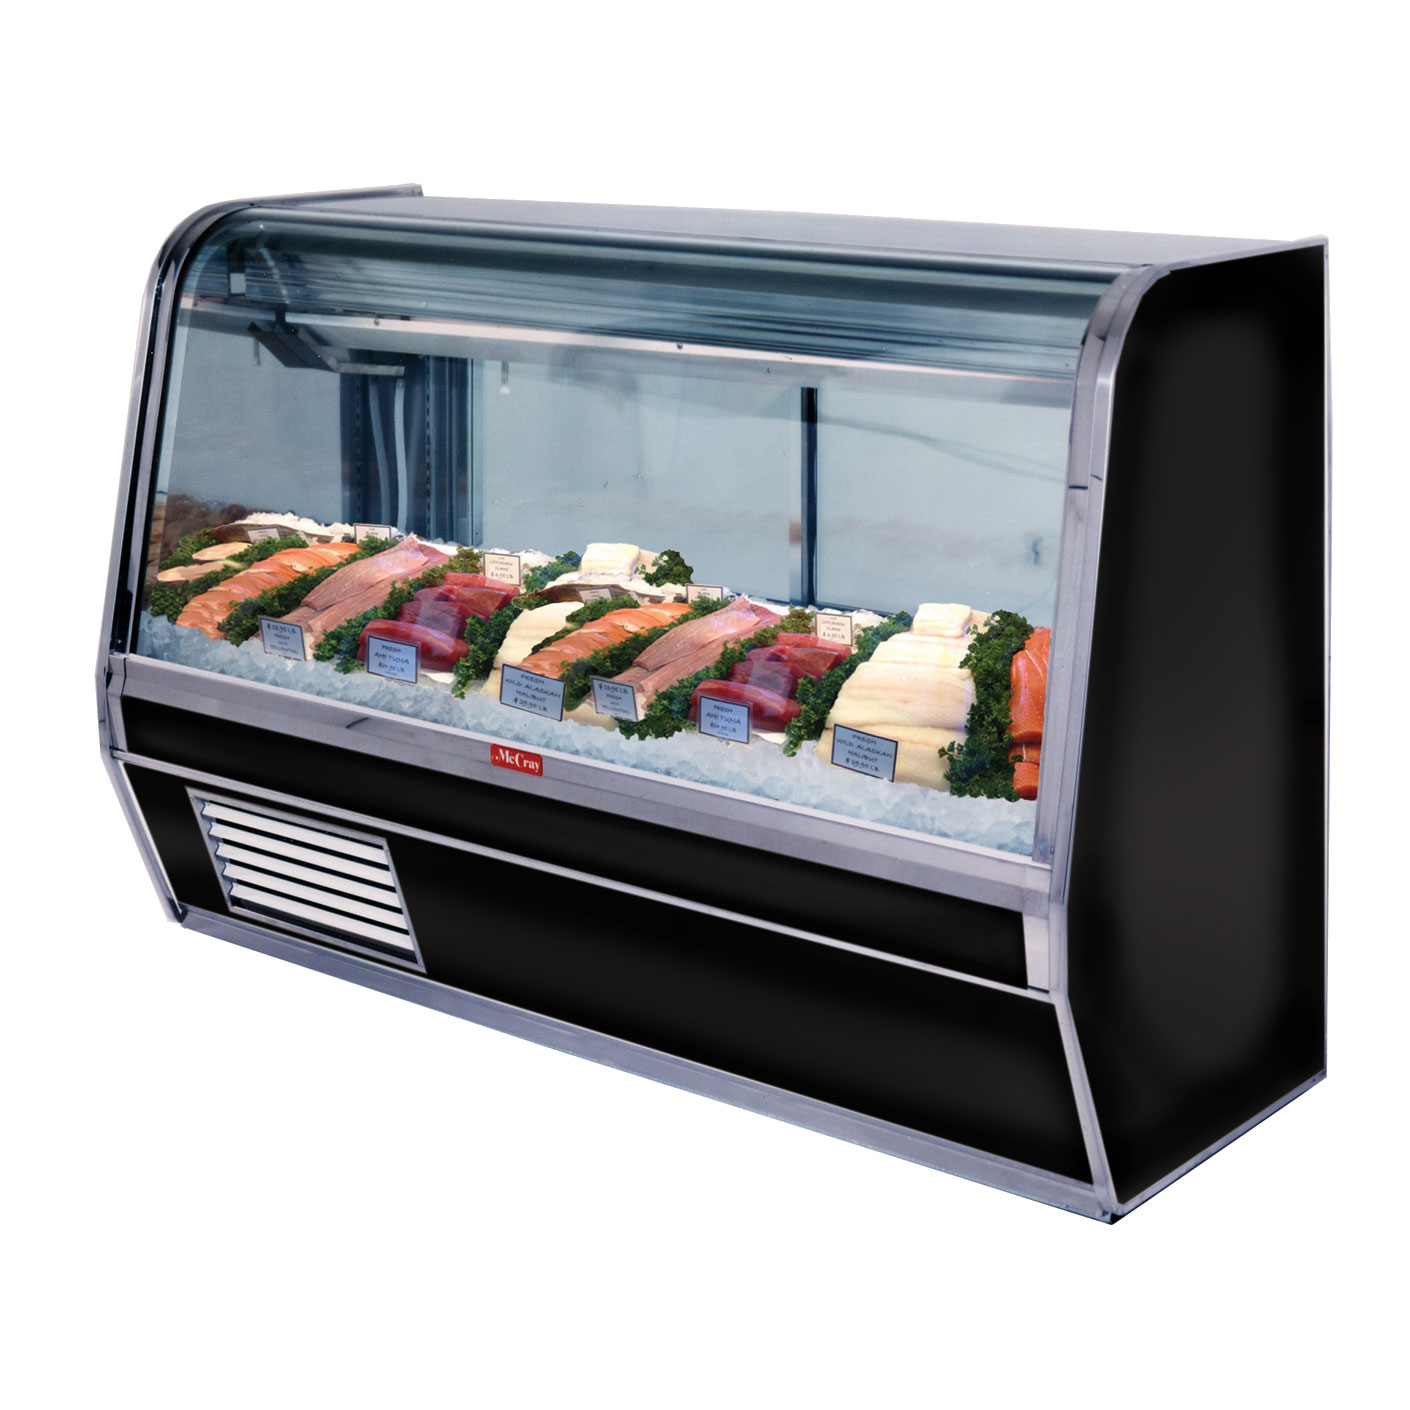 Howard-McCray R-CFS32E-8-LED display case, deli seafood / poultry